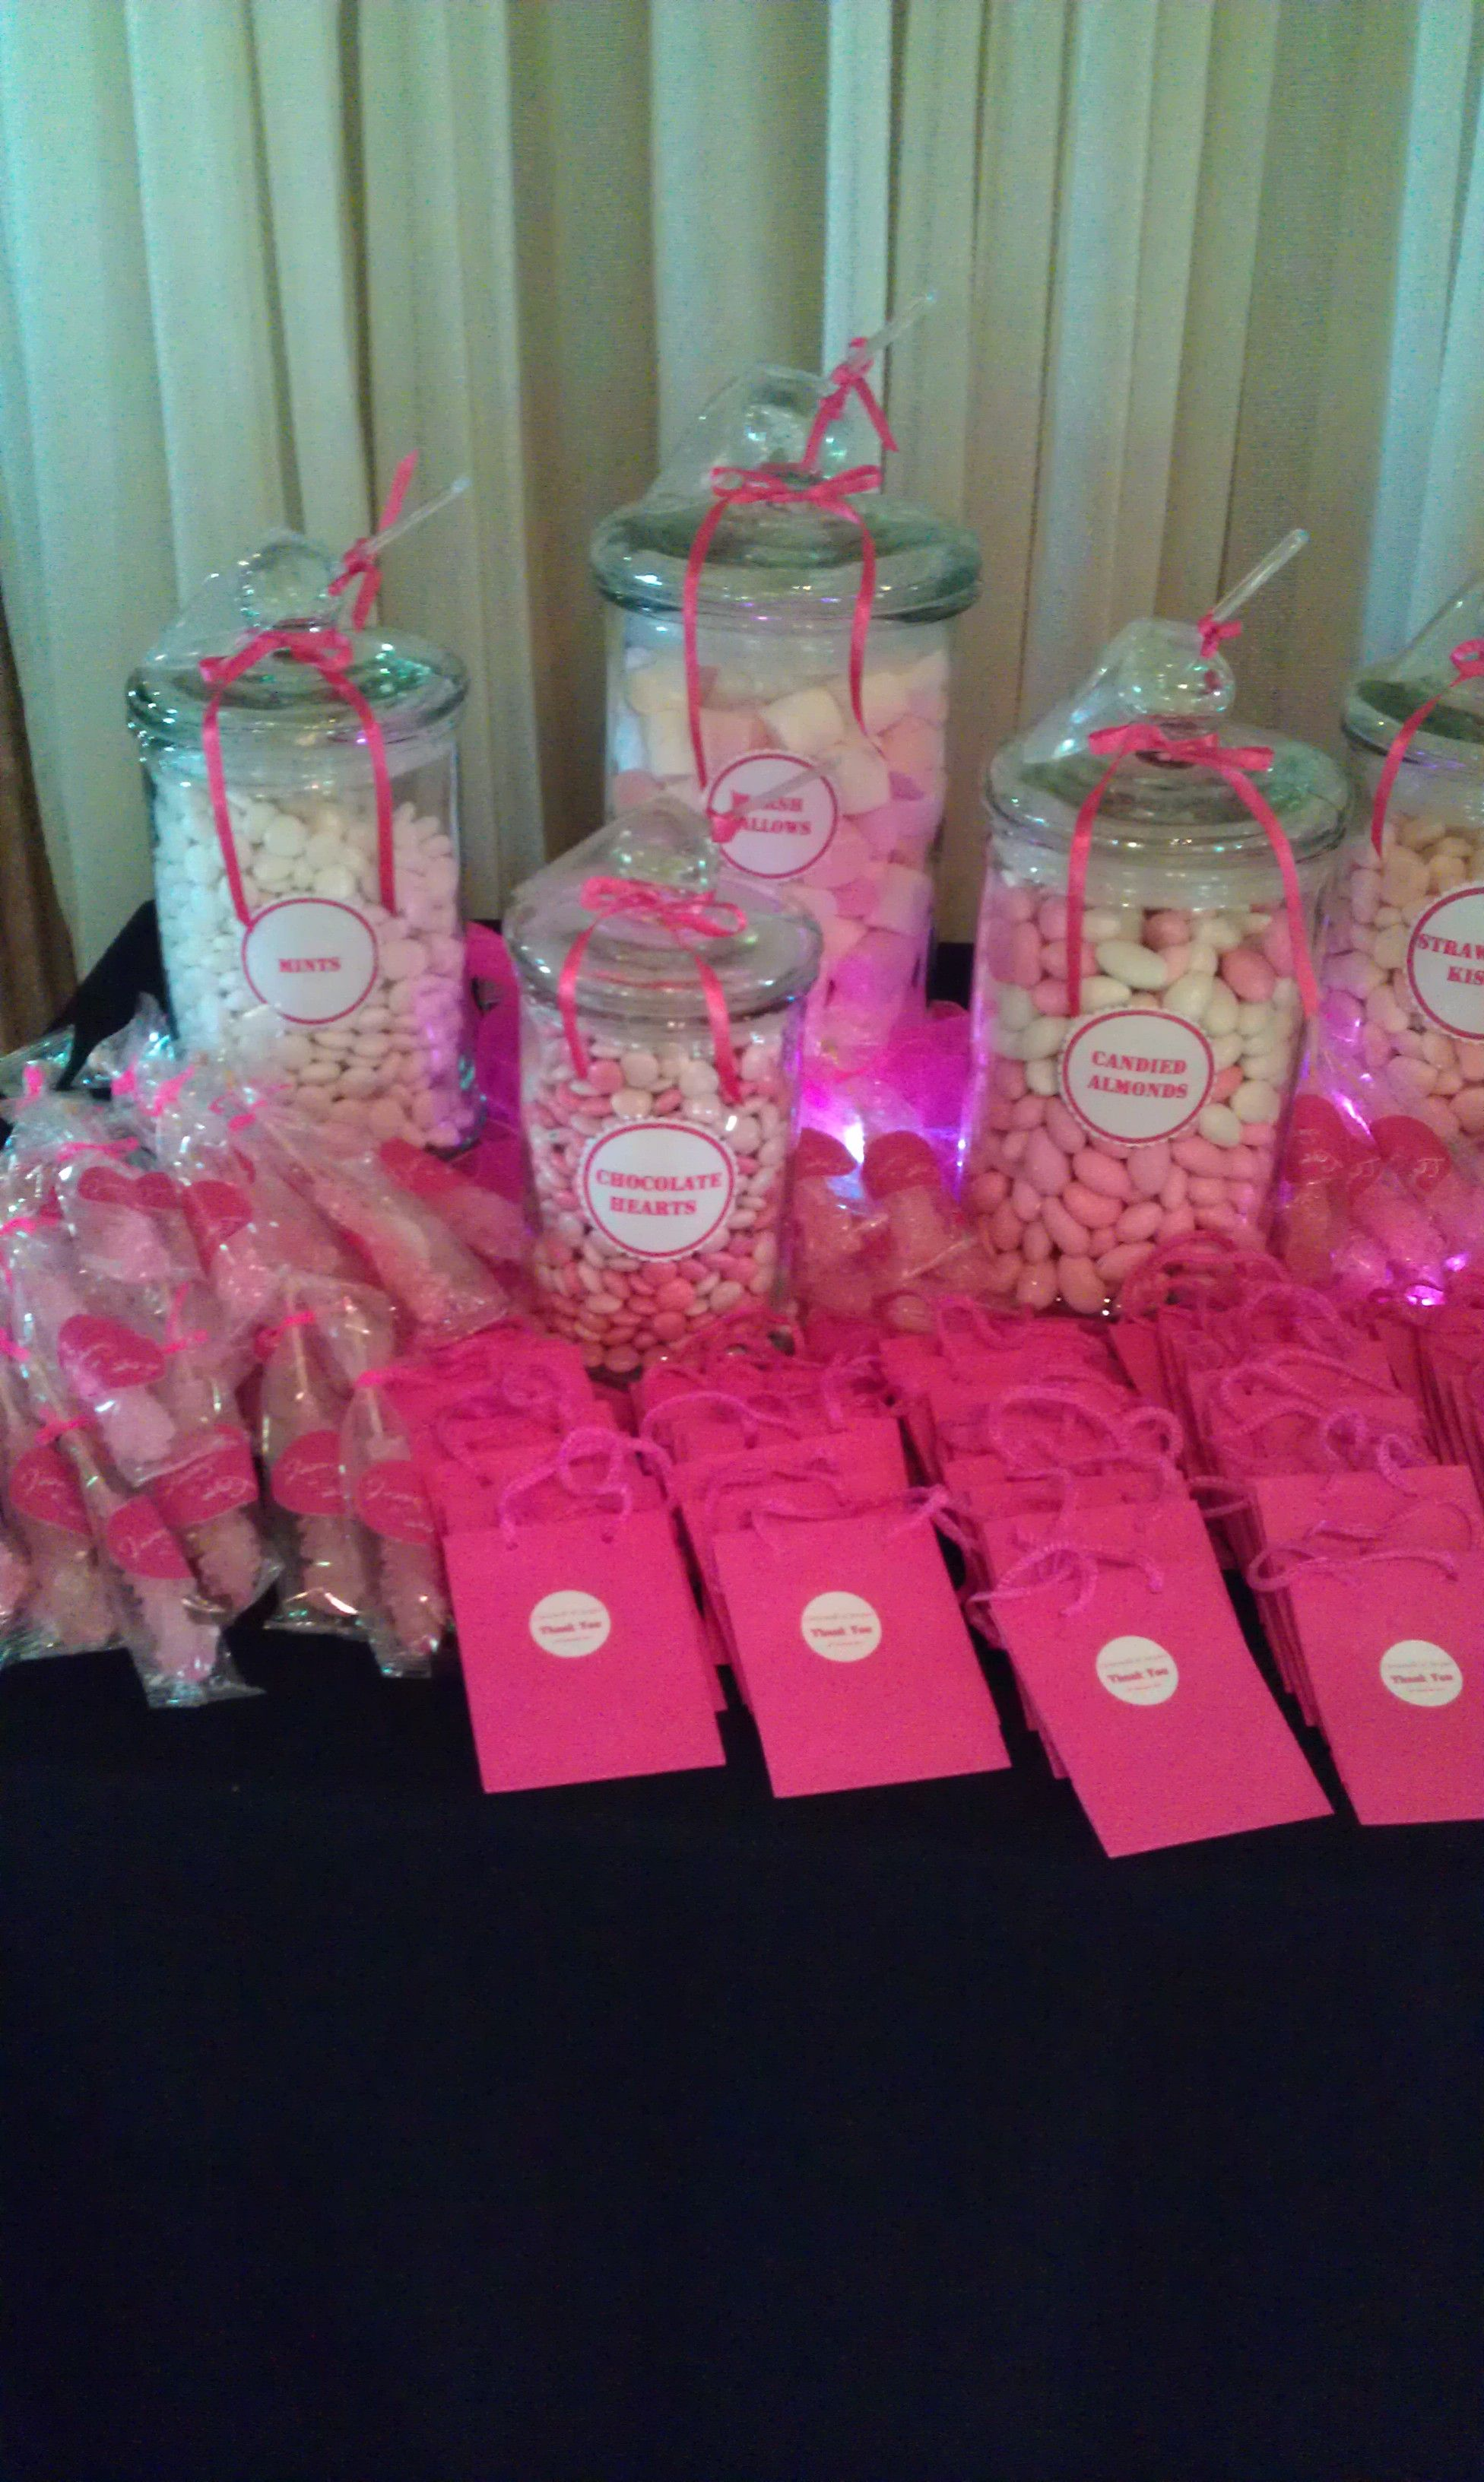 Sweet amp sparkly wedding candy buffet pictures to pin on pinterest - Electric Pink Candy Buffet